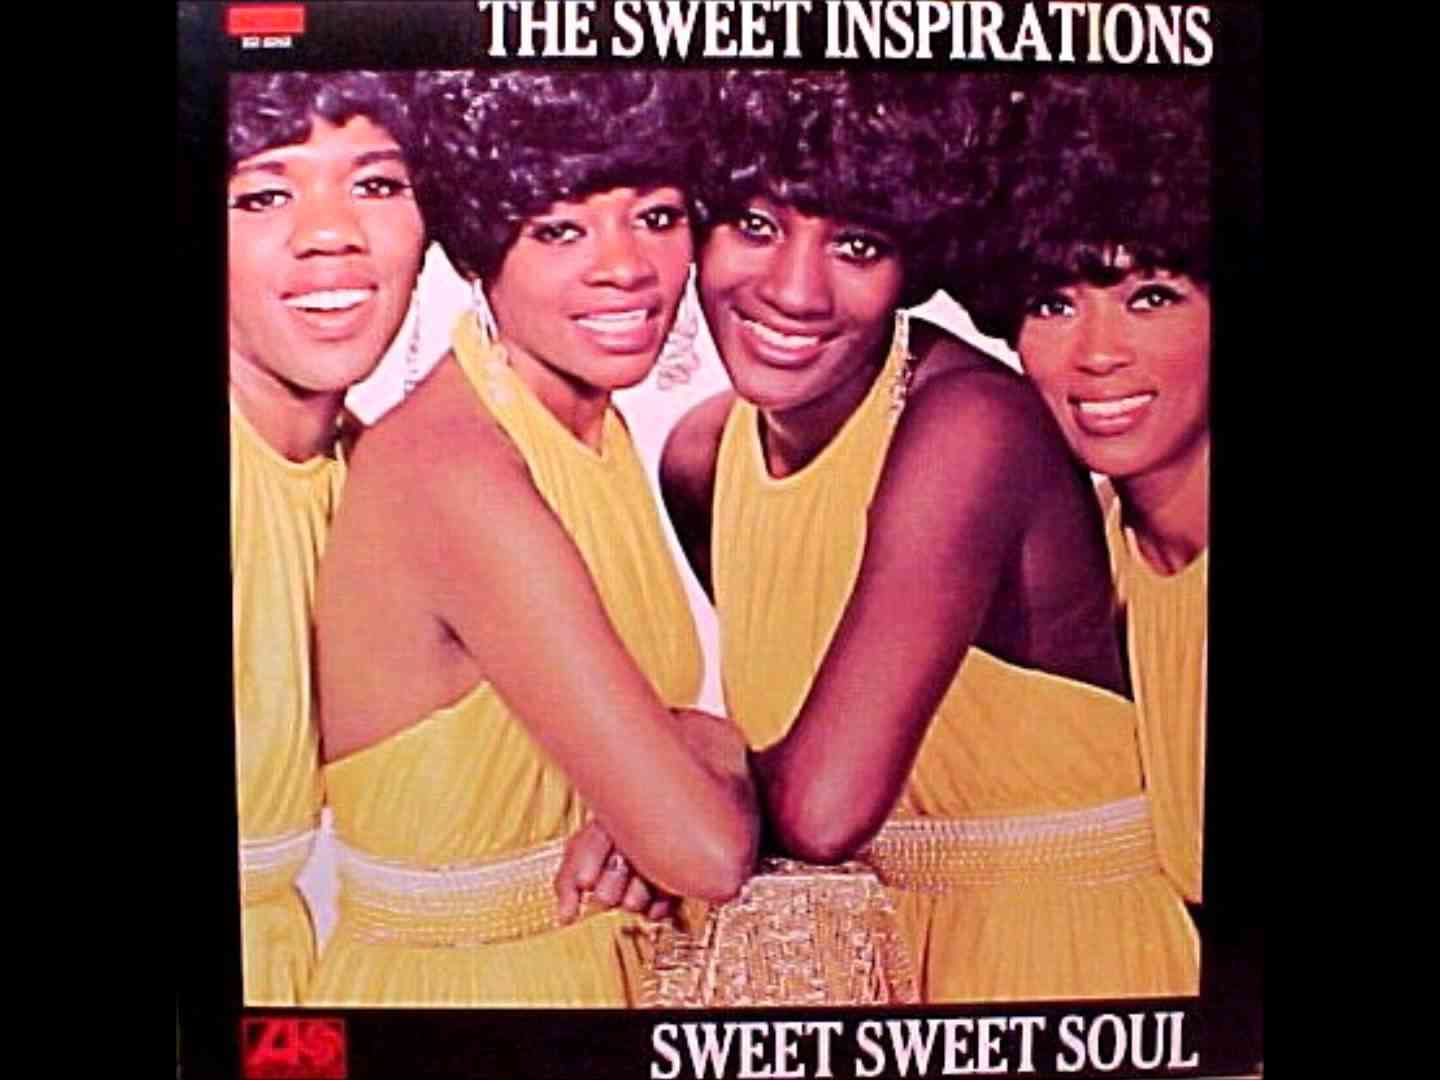 """Sweet Inspiration"" by the Sweet Inspirations - YouTube"